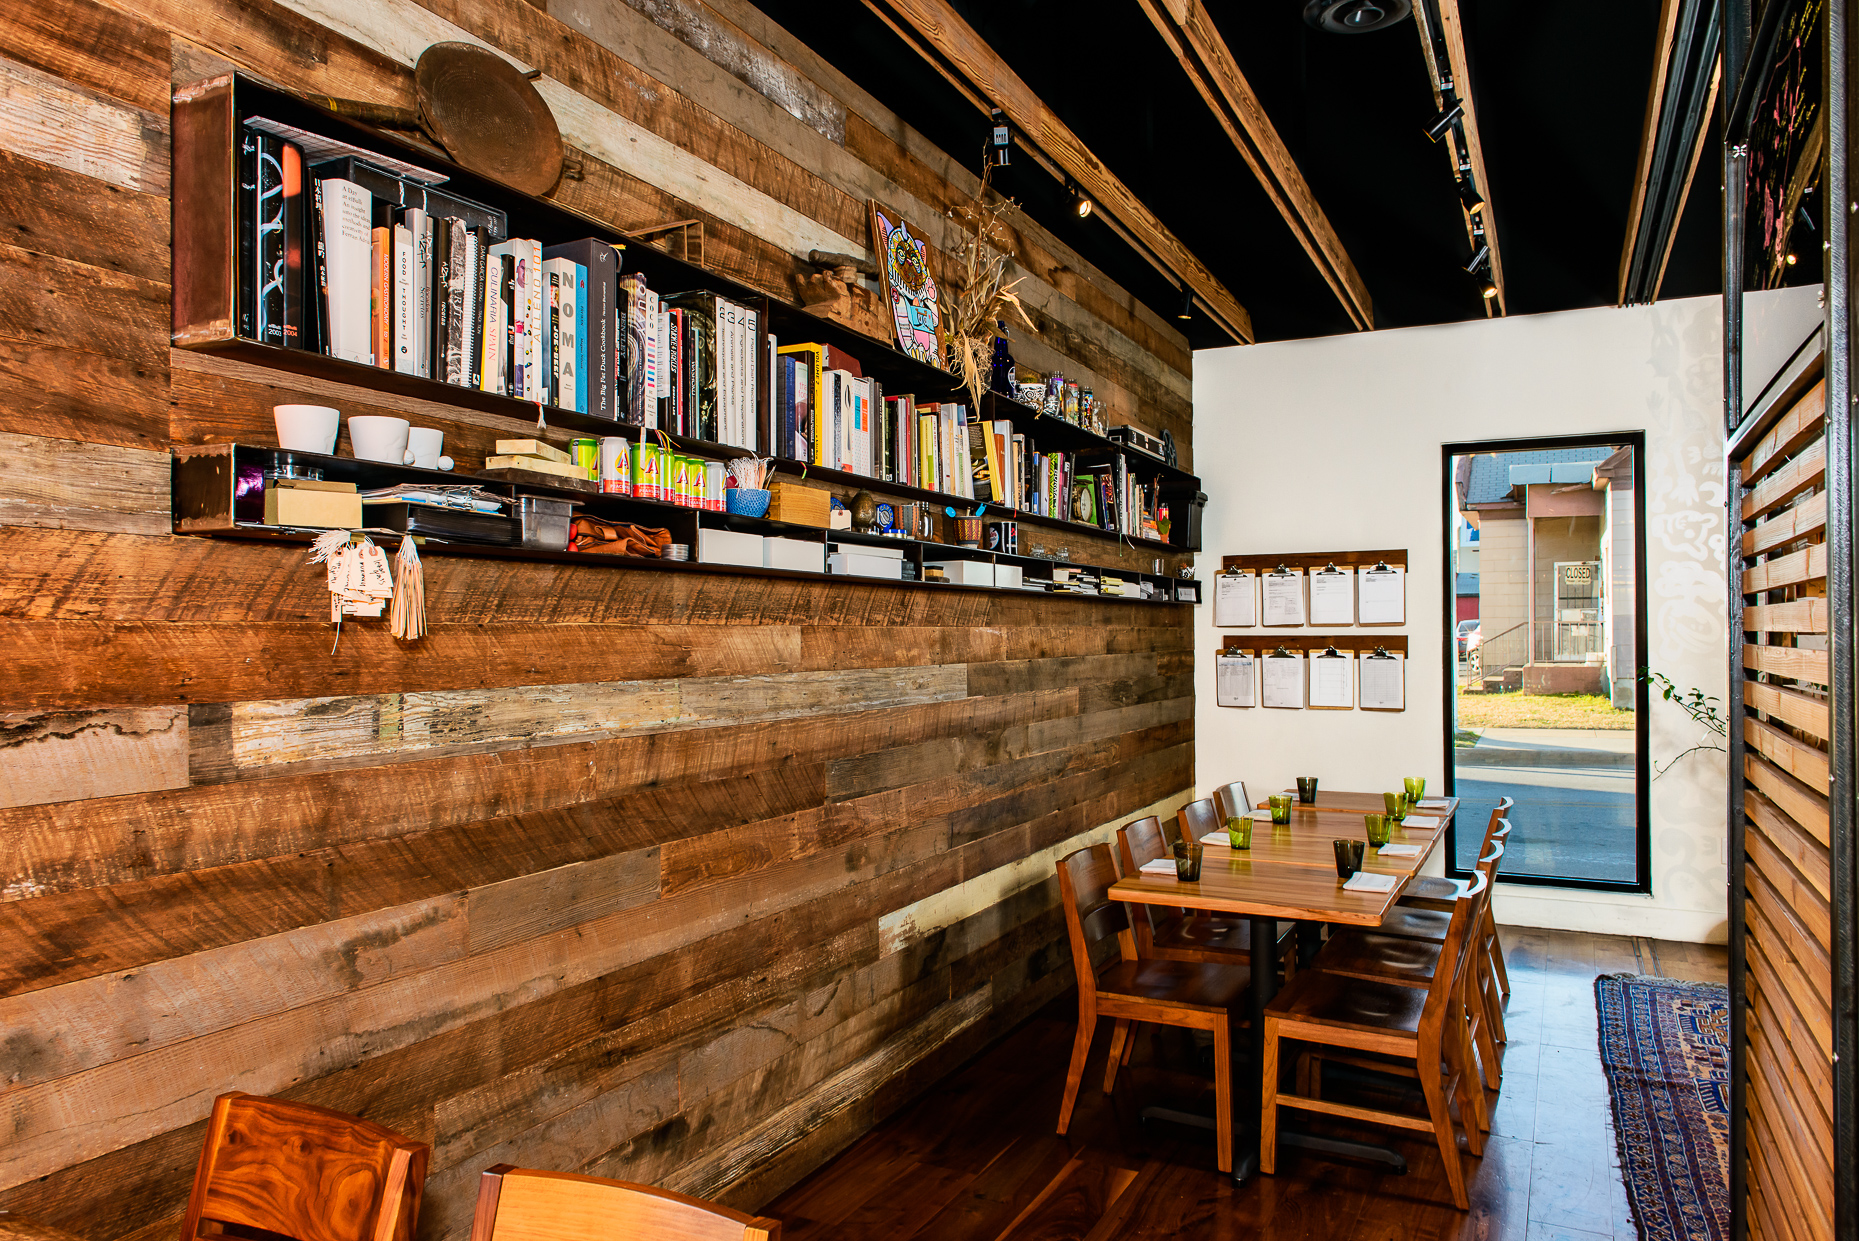 Austin-Commercial-Photographer-Architectural-Interior-Design-Qui-Restaurant-Texas